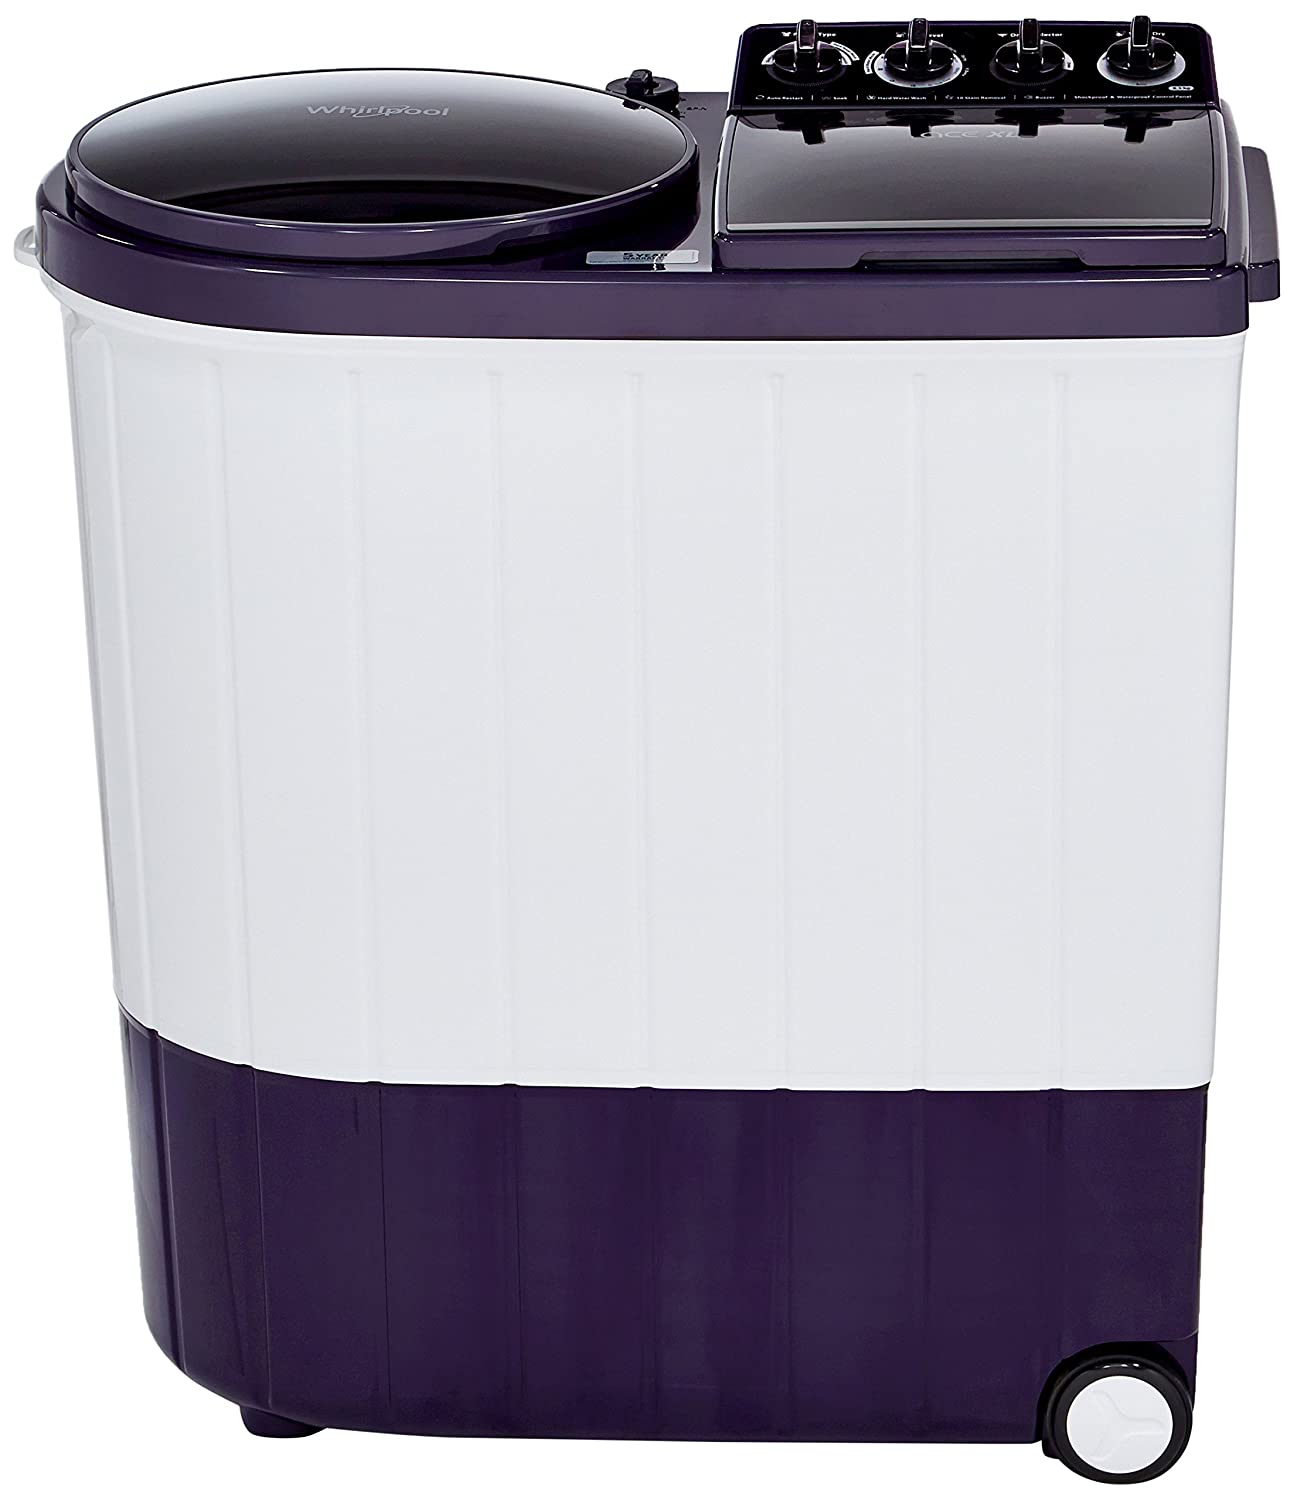 Whirlpool 8.5 kg Semi-Automatic Top Loading Washing Machine (ACE 8.5 XL, Royal Purple)